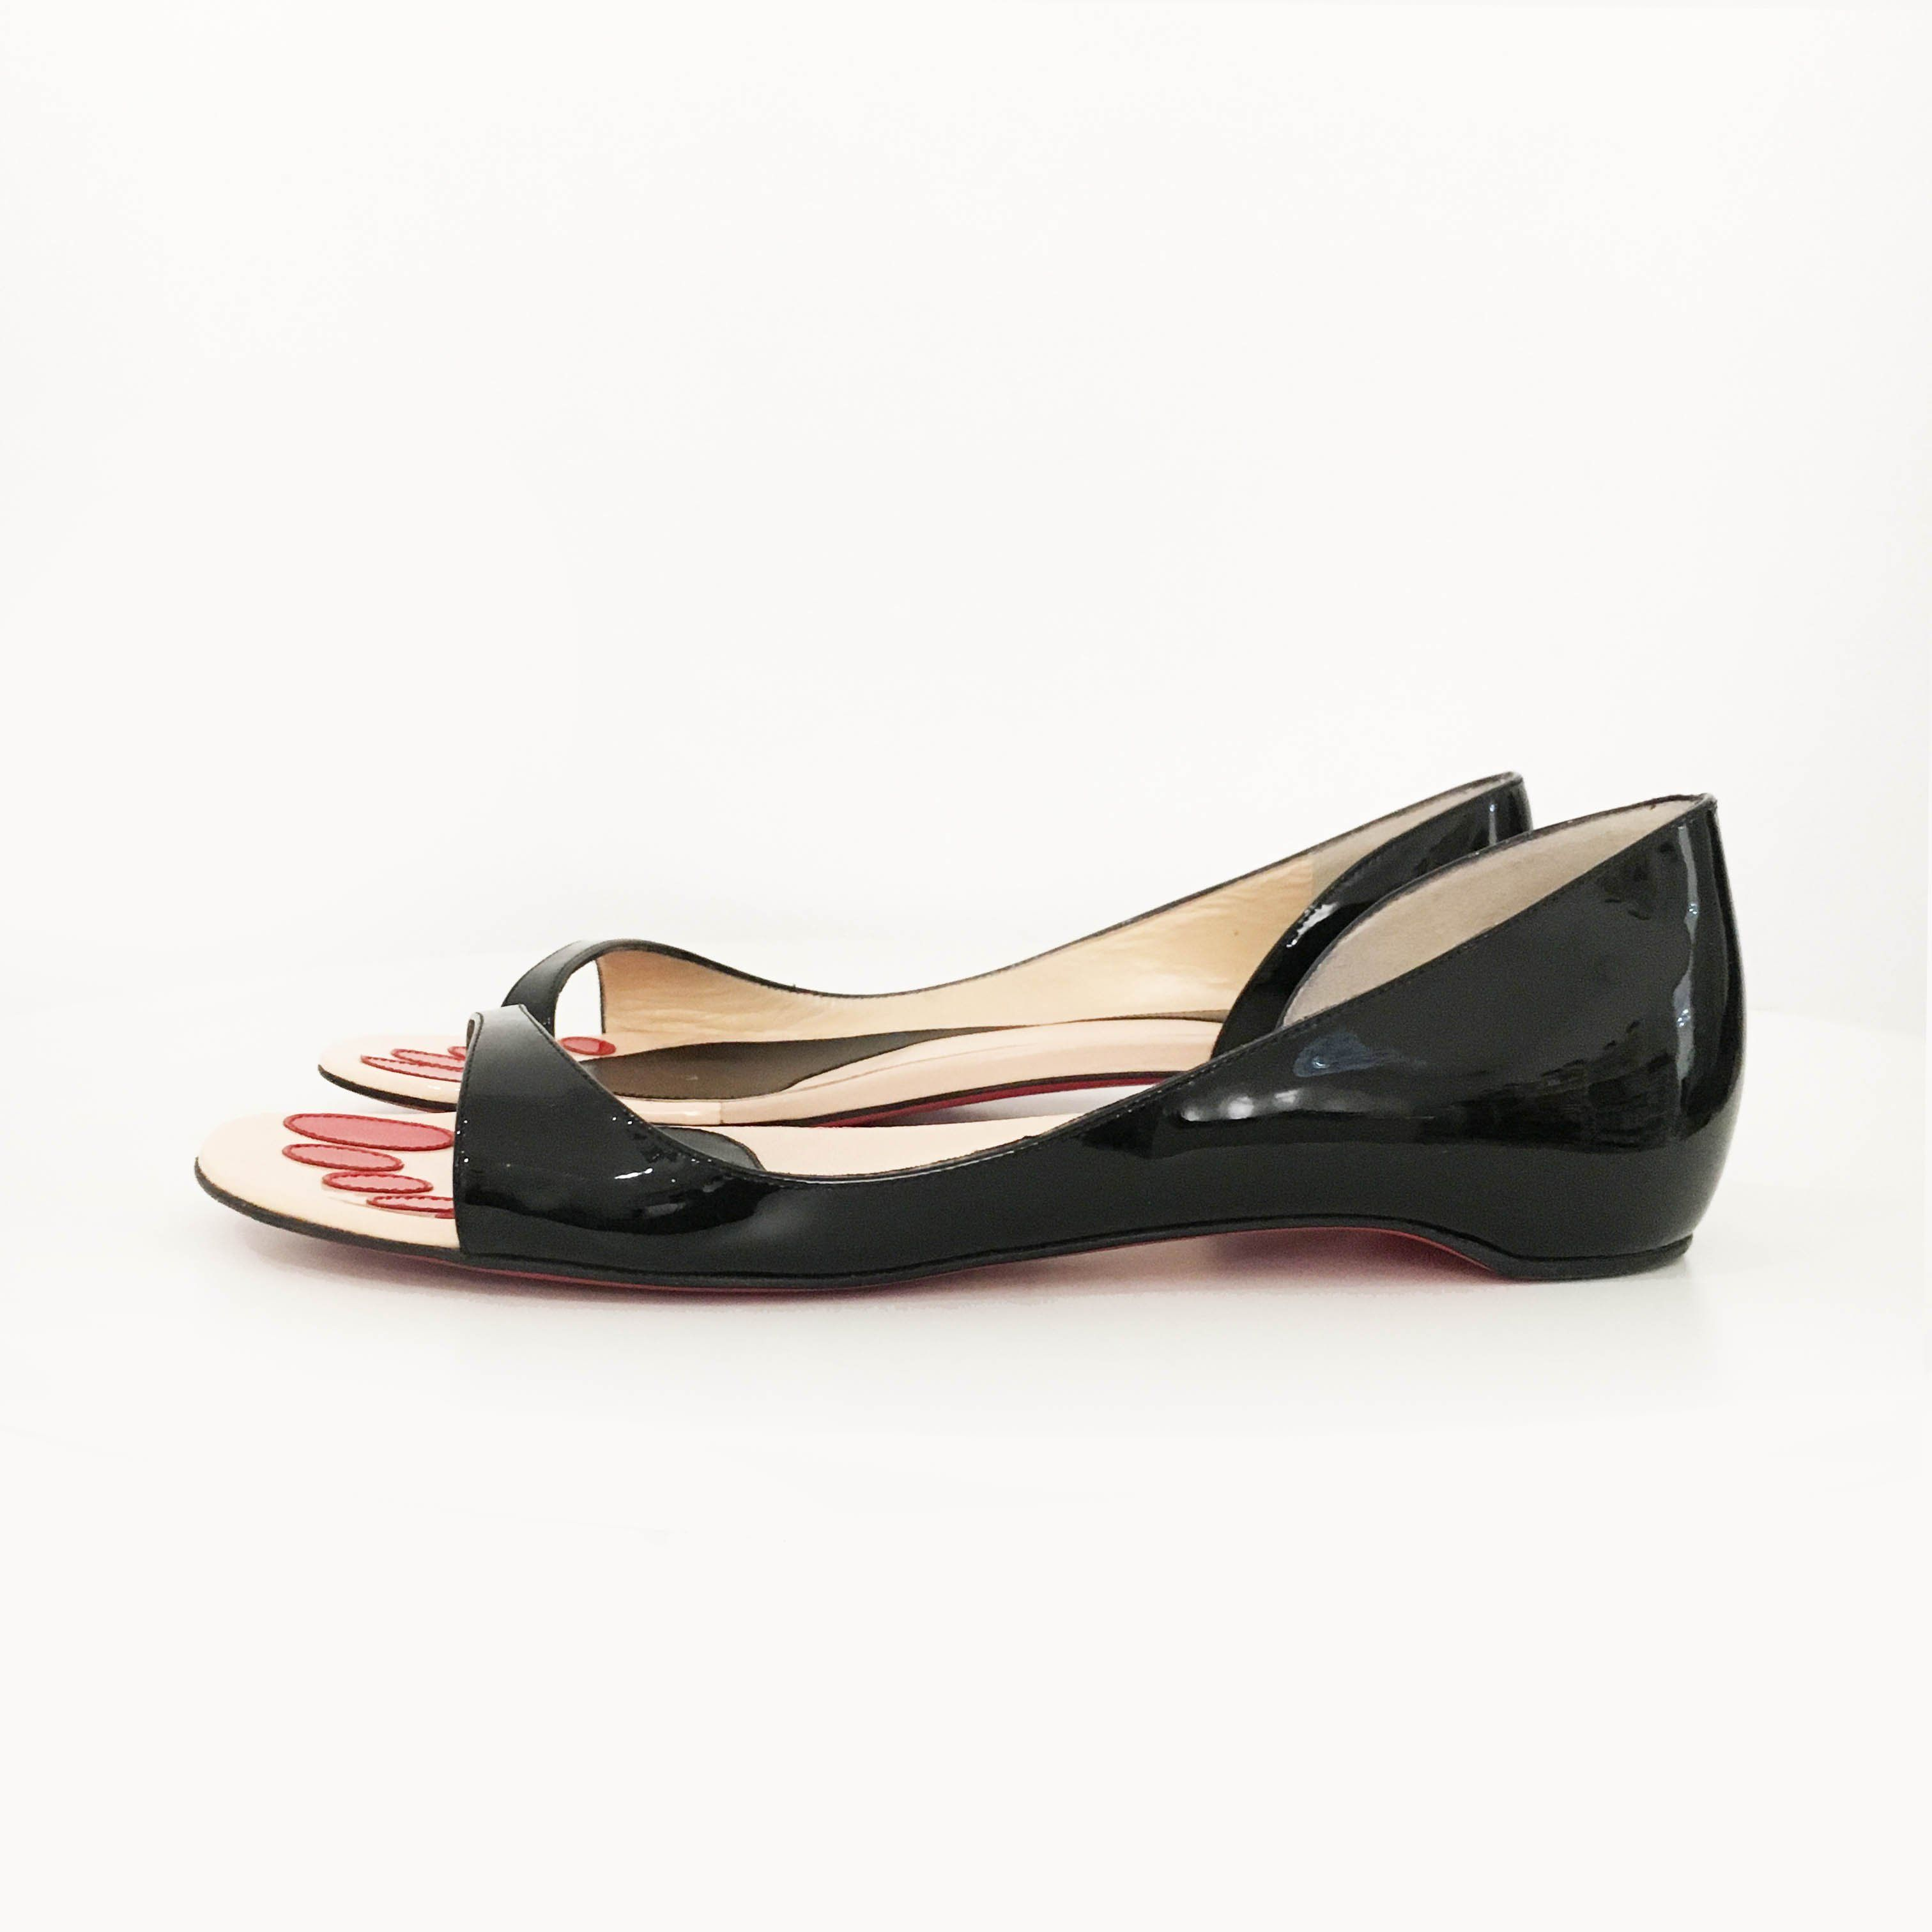 Christian Louboutin Black Patent Leather Flat Sandals